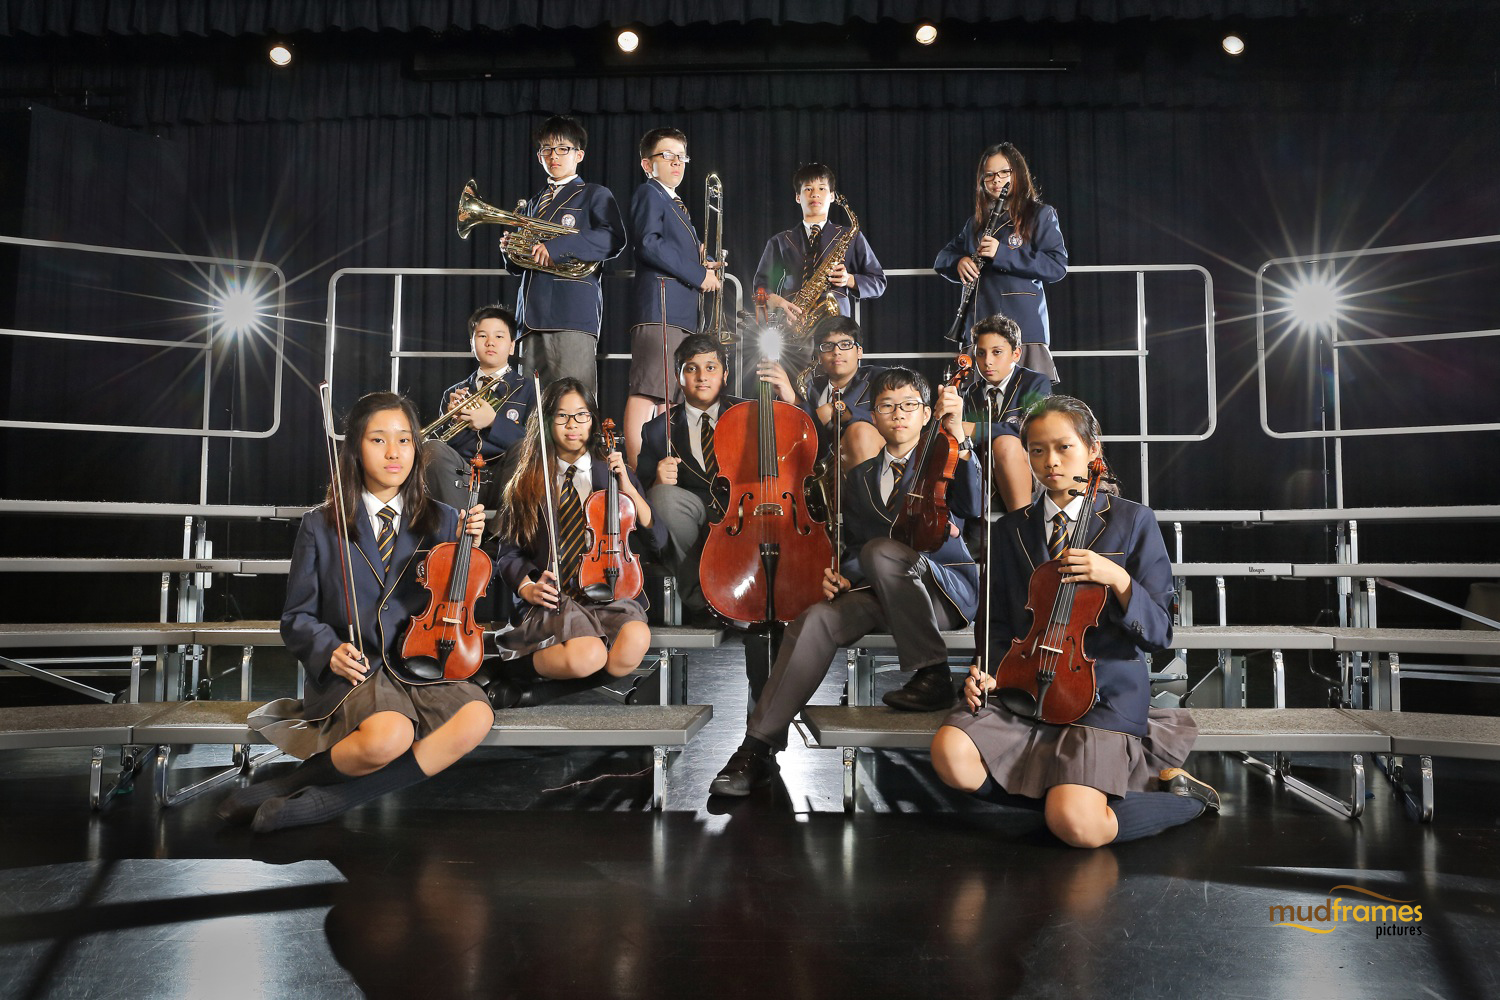 The British International School Student Musicians Group Shot